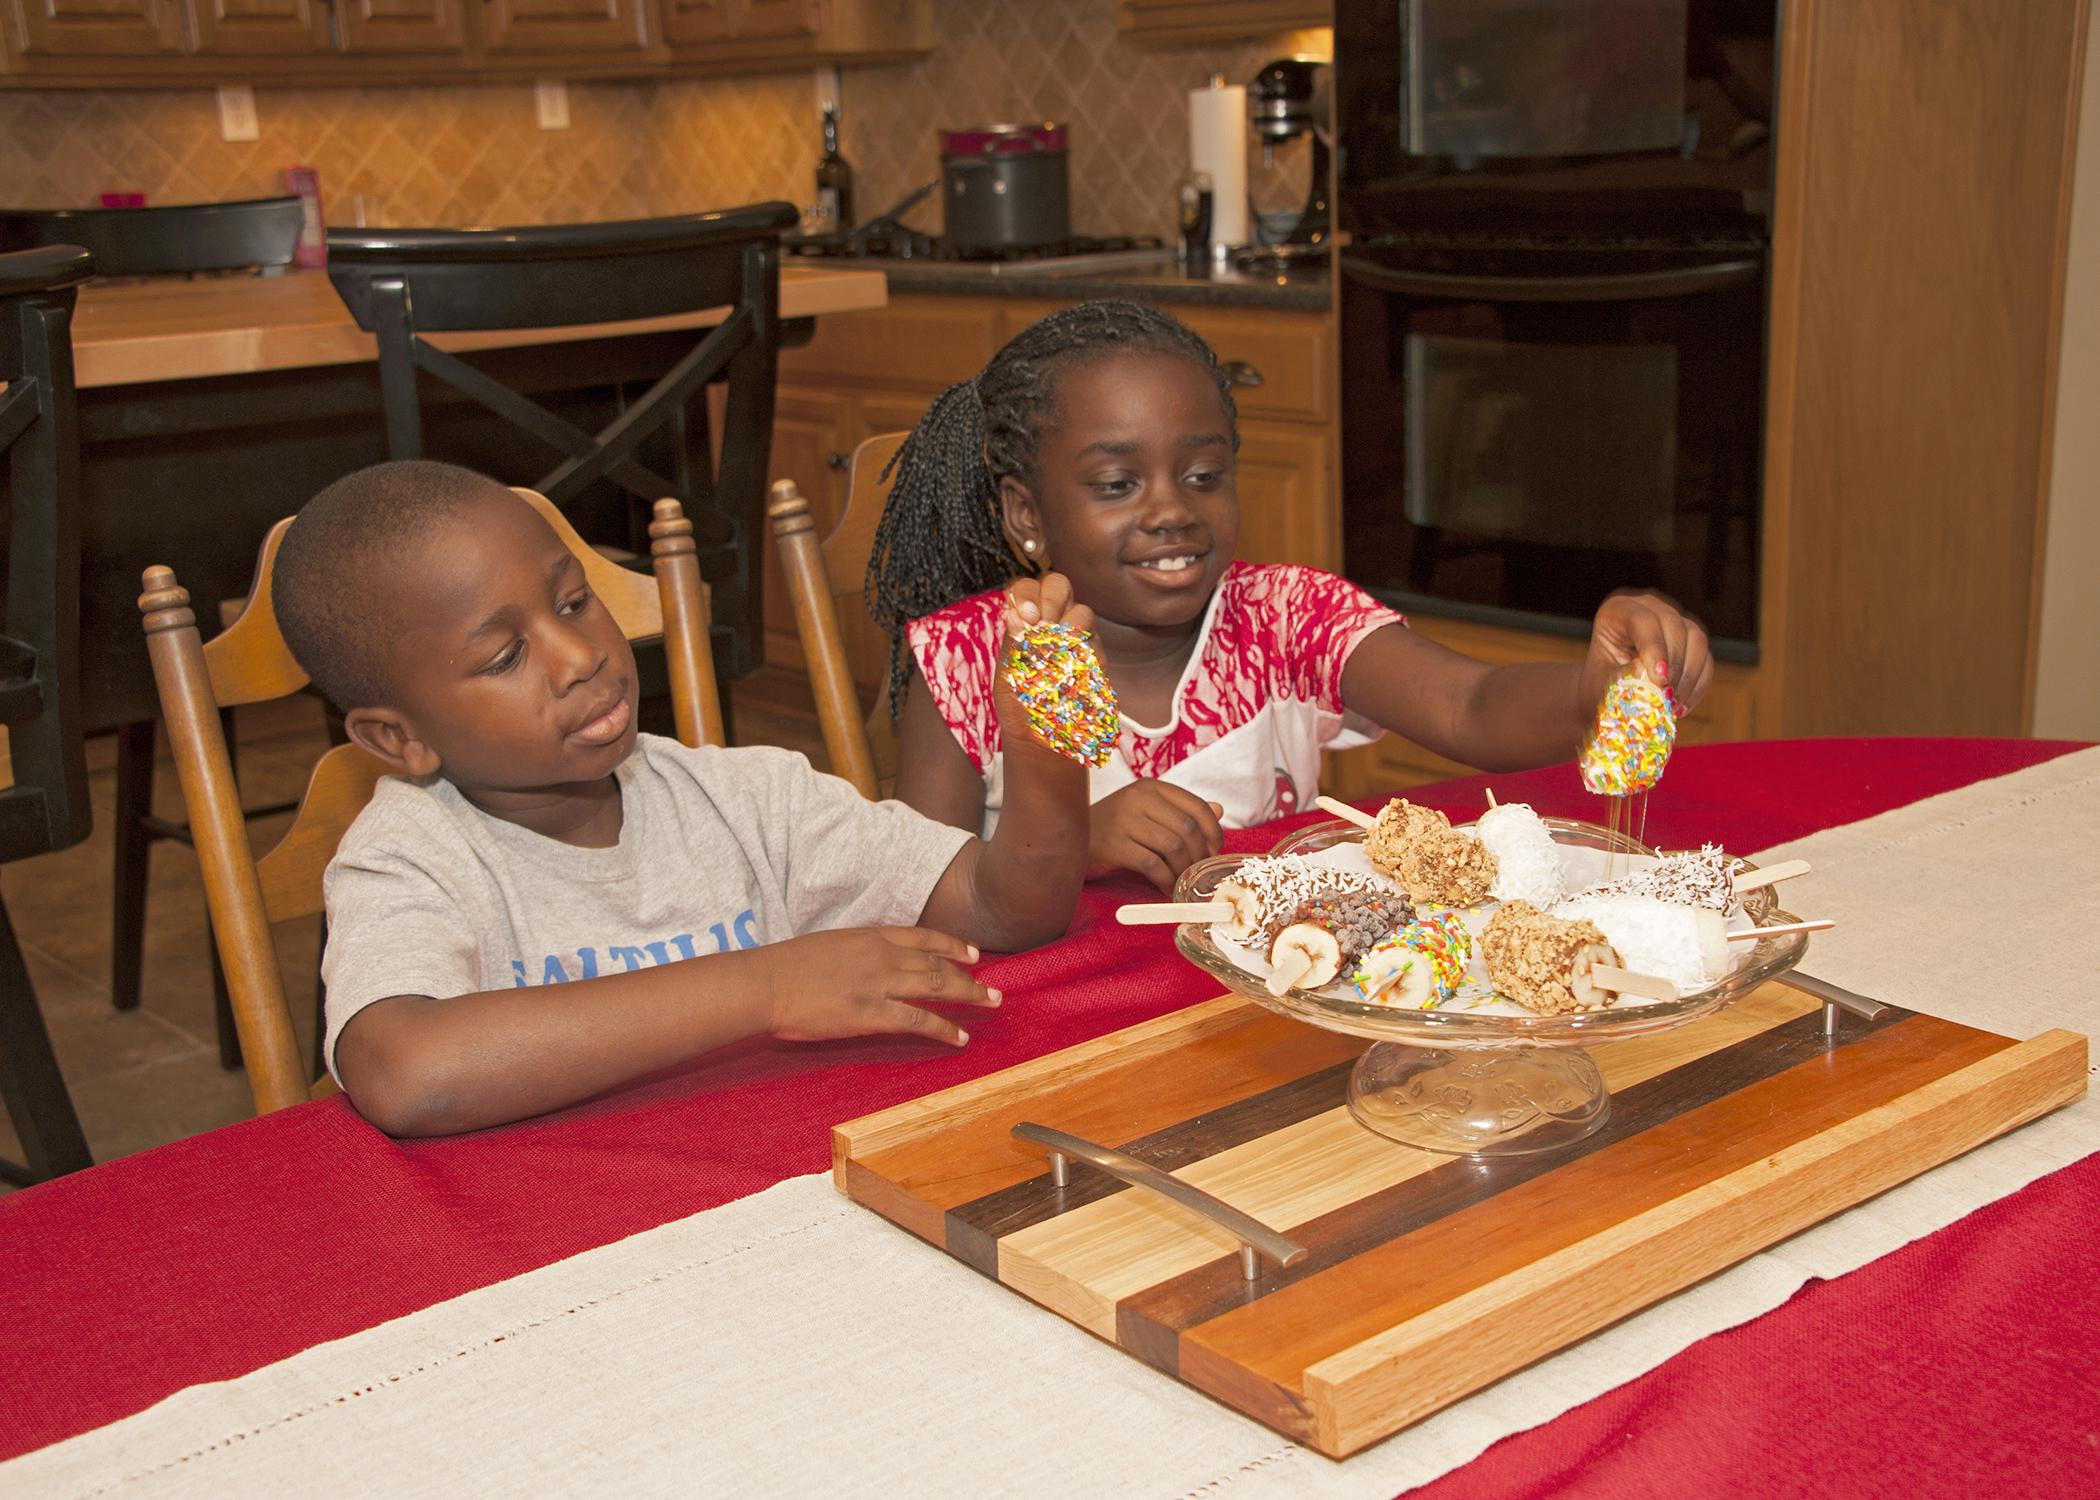 Six-year-old Jordan Ross and 8-year-old Nyema Johnson of Columbus enjoy choosing fun summer treats -- frozen banana pops dipped in either vanilla yogurt or almond bark. (Photo by MSU Ag Communications/Kat Lawrence)